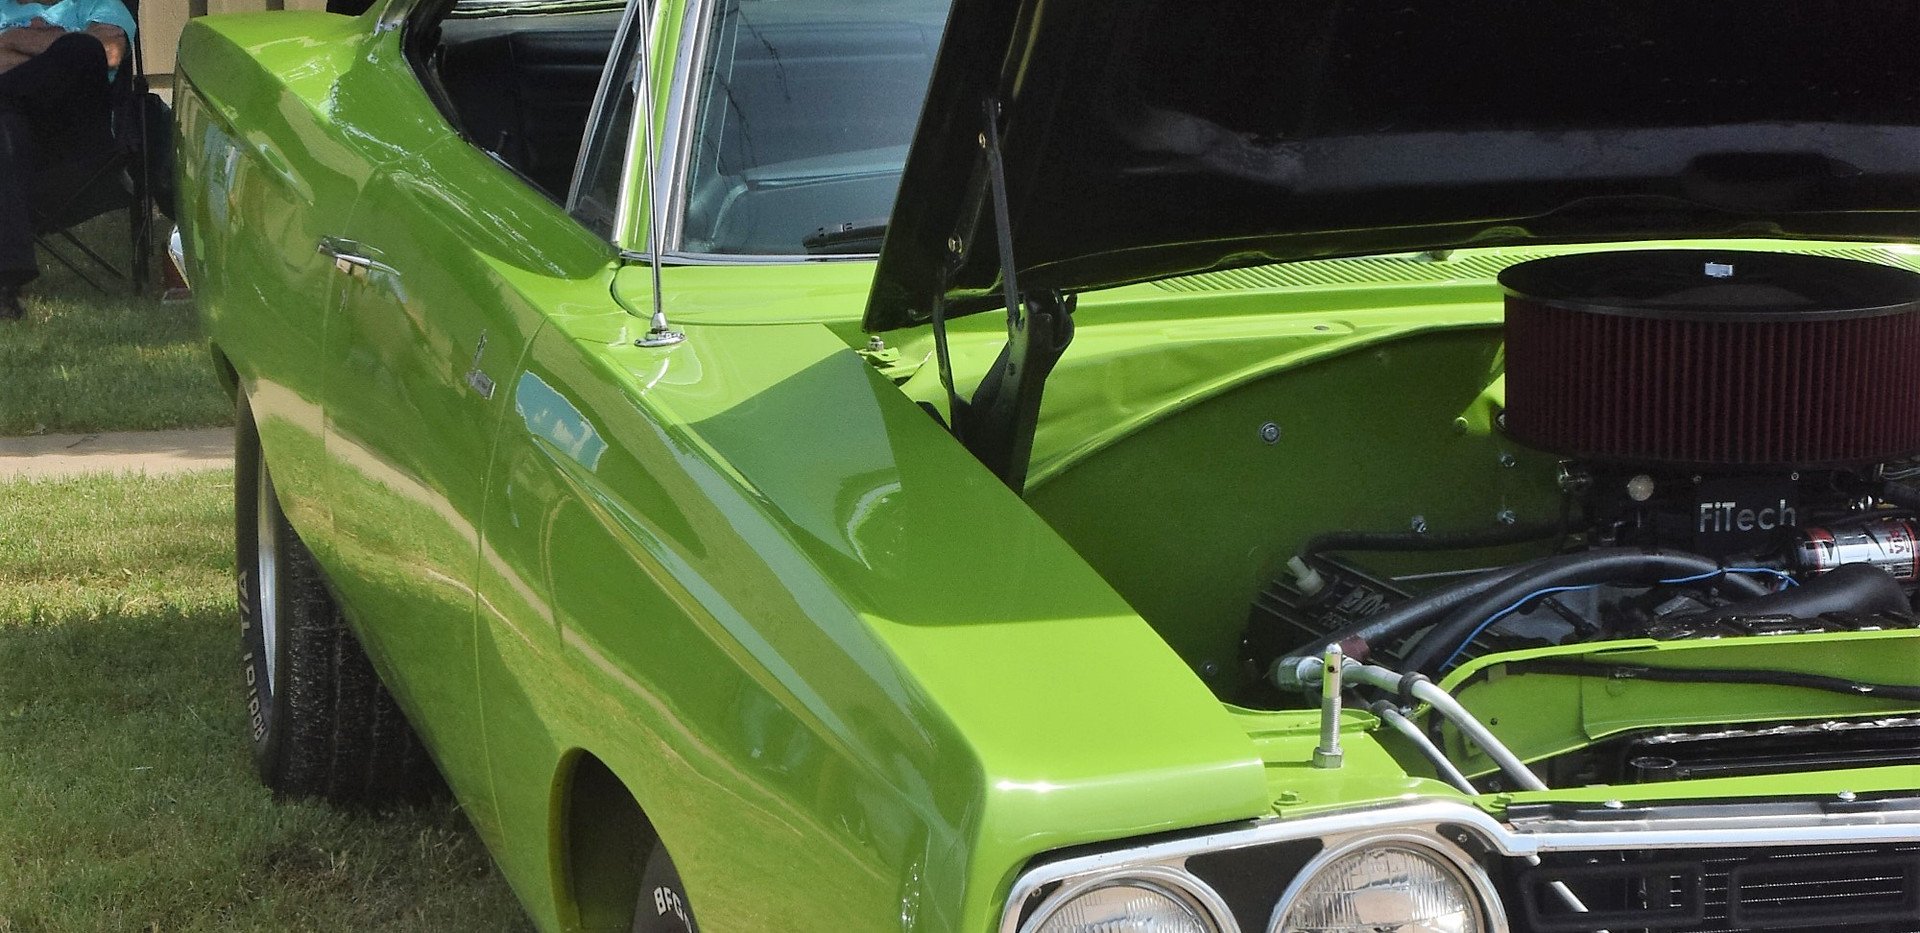 '68 Plymouth Road Runner - Leon Guhr - People's Choice